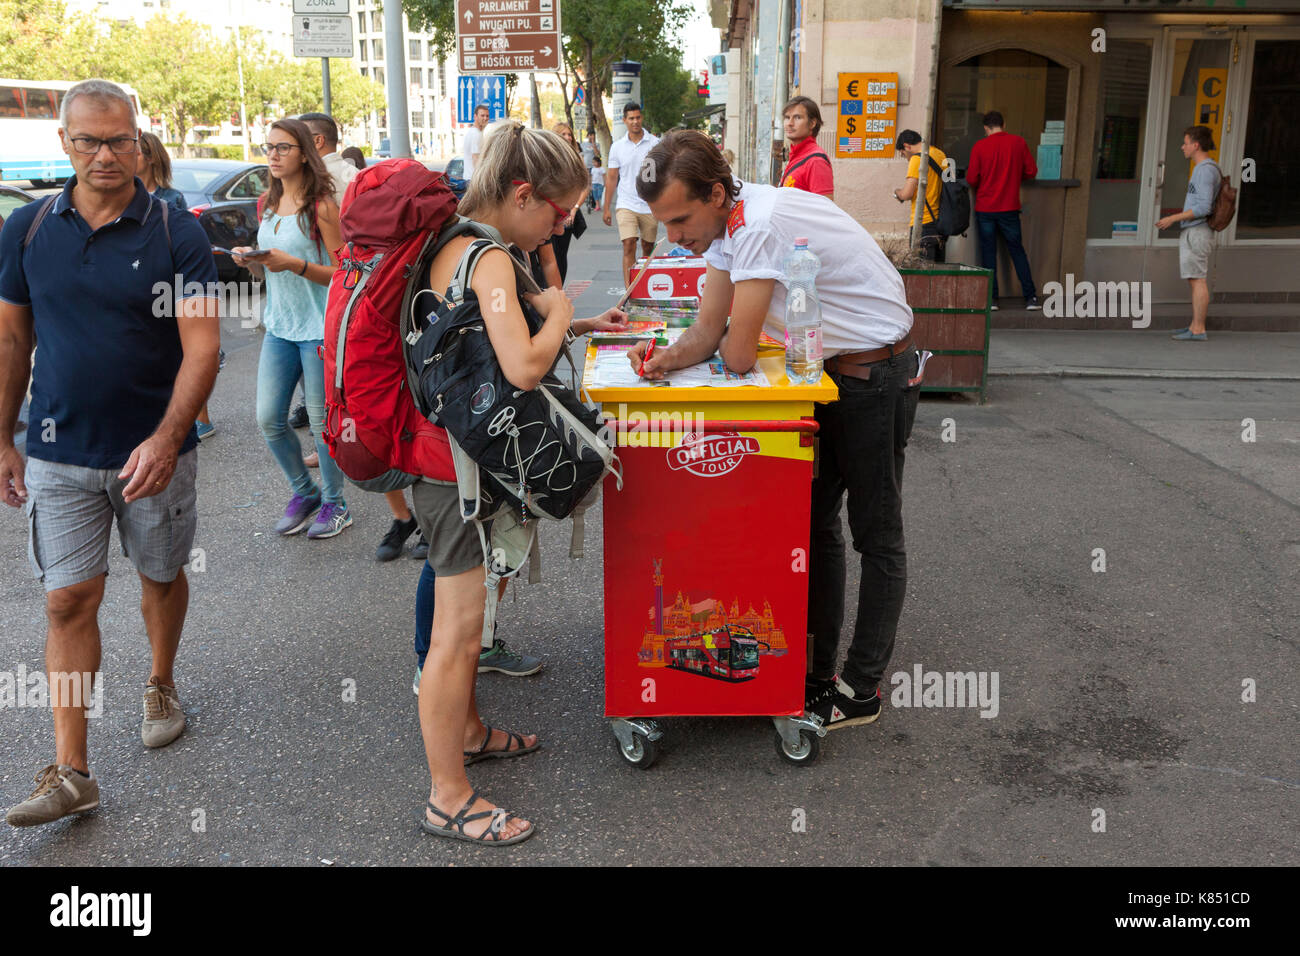 Backpackers at a city guide tour stand in central Budapest, checkin out optional tours. - Stock Image